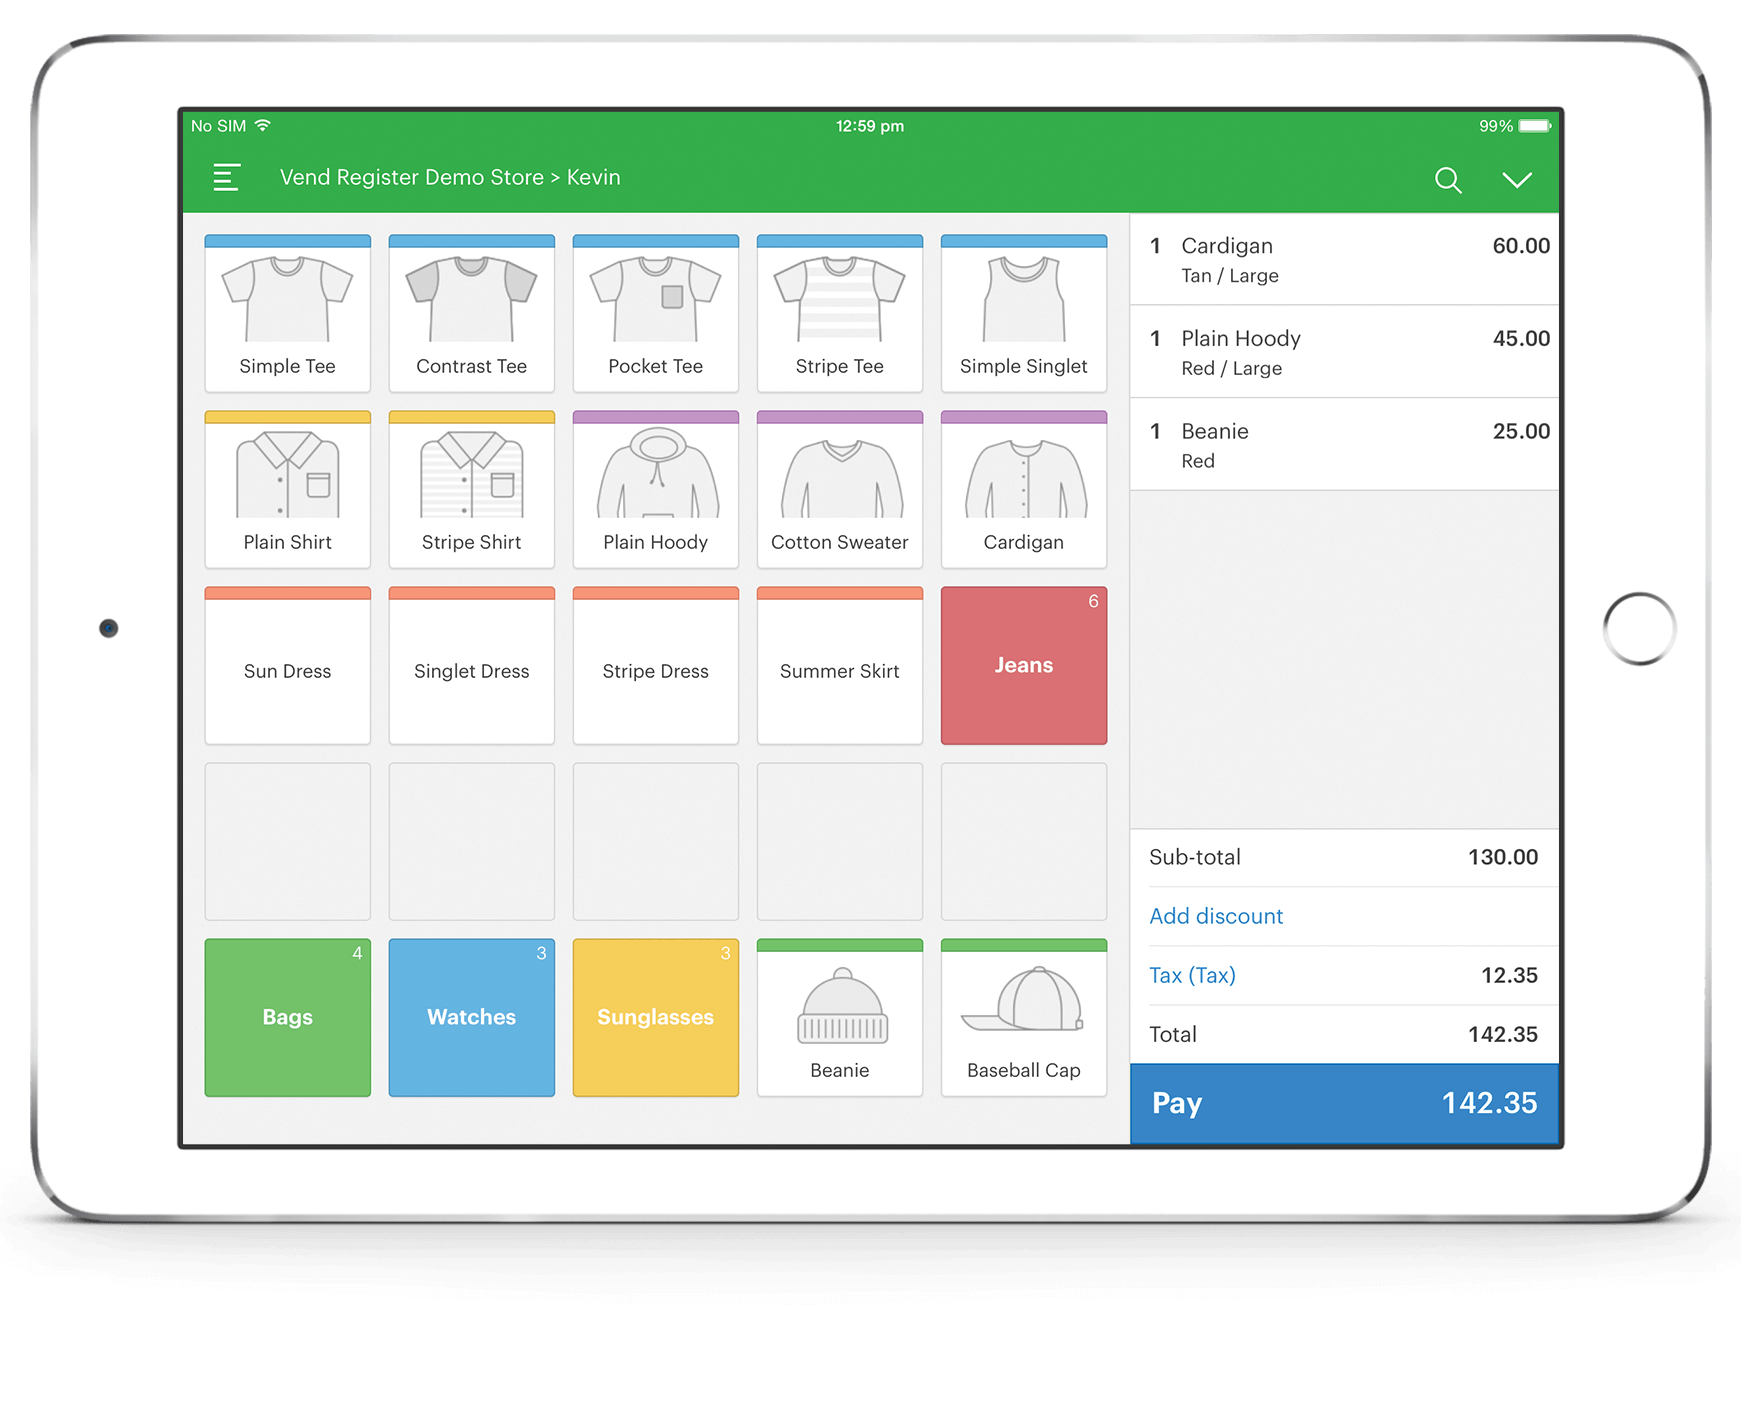 Vend mobile POS works with a wide range of hardware